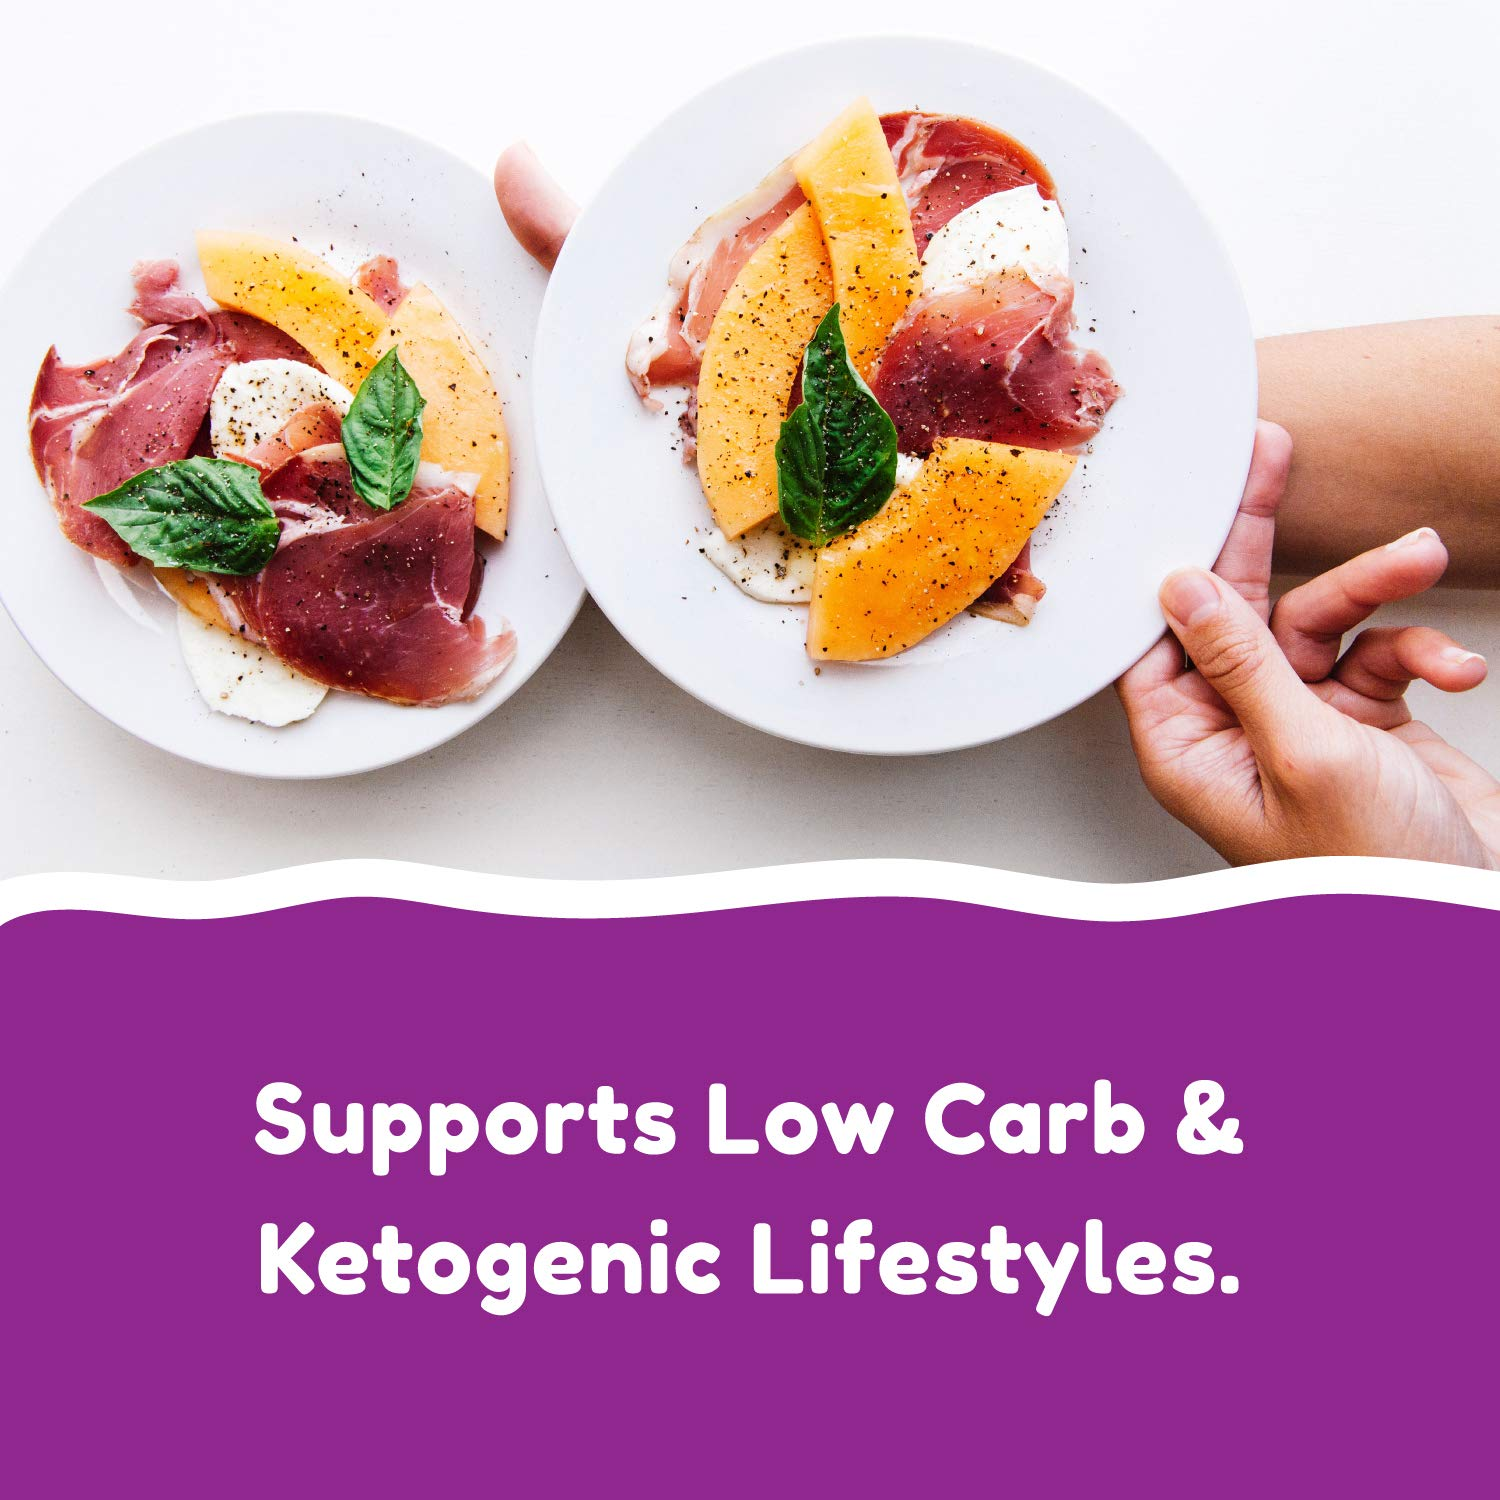 Kiss My Keto - Exogenous Ketones Supplement - 120 Keto BHB Capsules, Keto Diet Pills with Keto BHB Salts as Ketone with Caffeine, Take with Your Favorite Ketones Drink for Ketosis, 60 Day Supply by Kiss My Keto (Image #5)